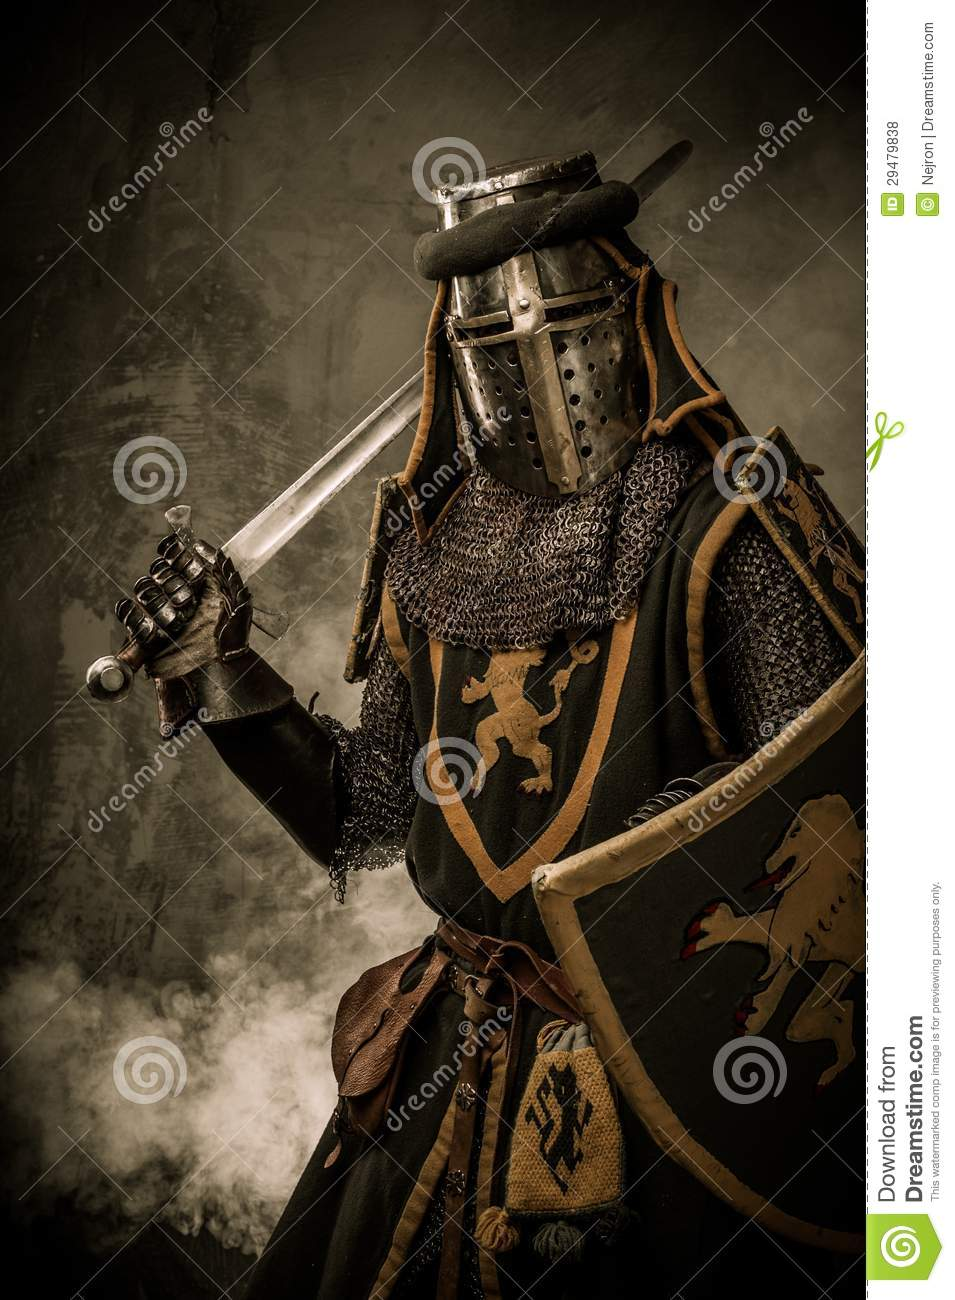 Knight with Sword and Shield Statue |Knight Sword And Shield